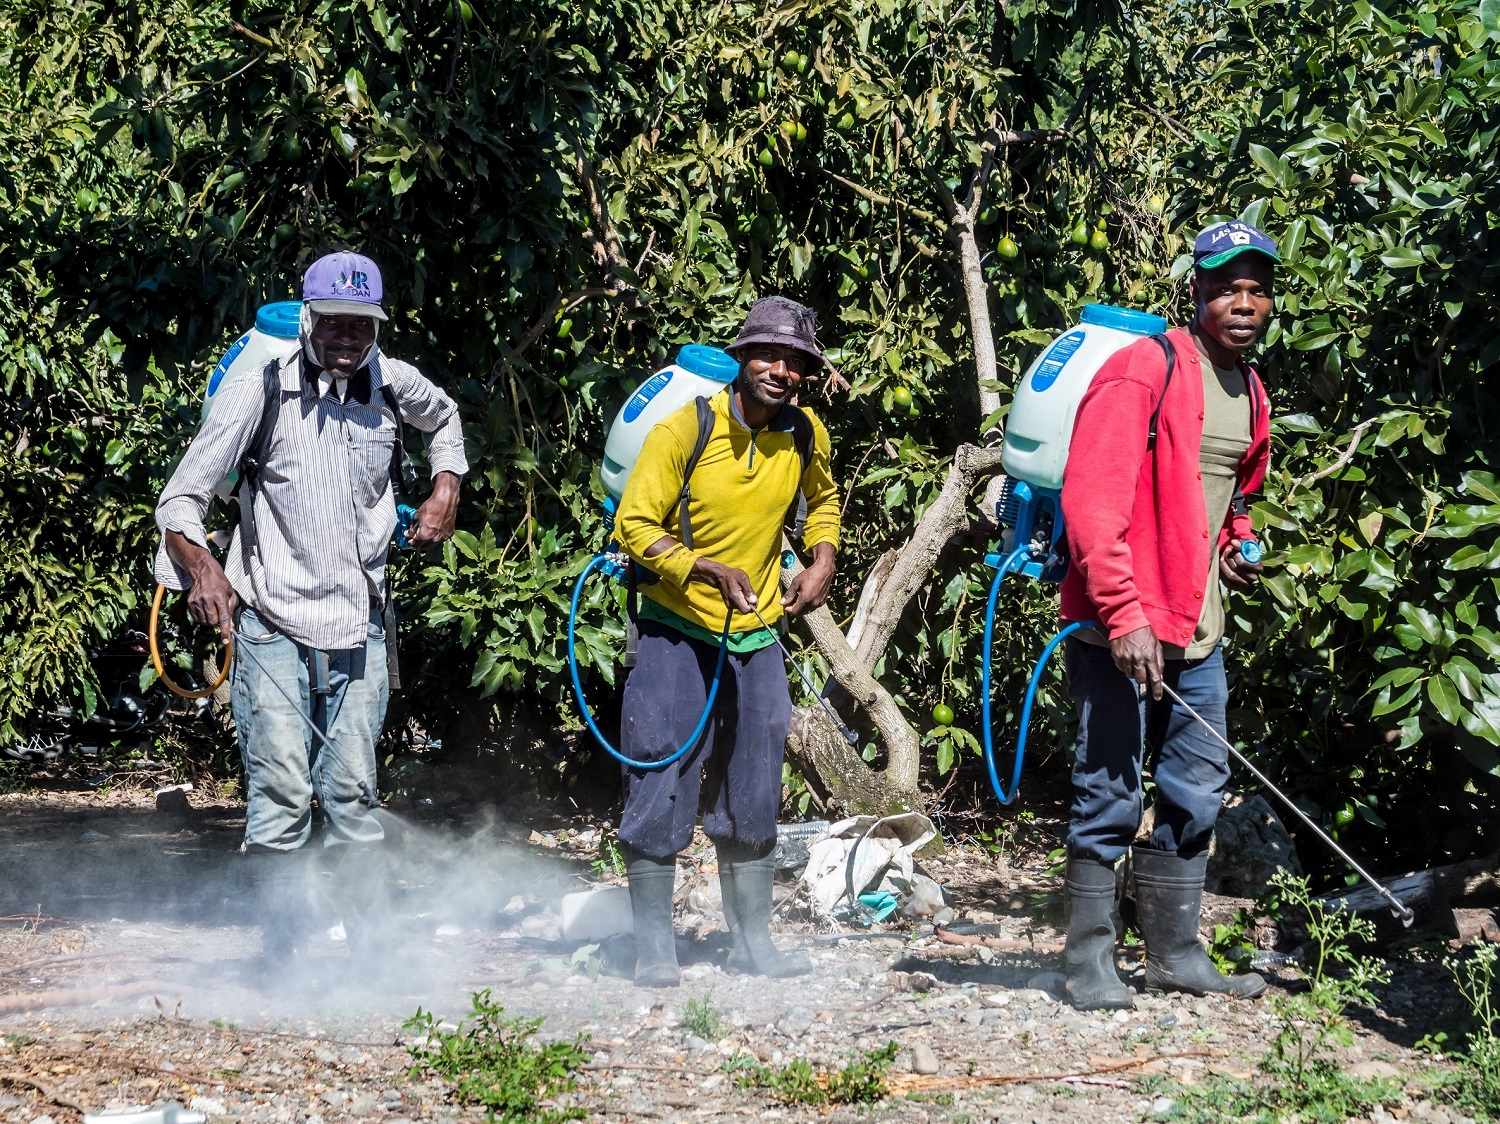 Ocoa, dominican republic. Haitian avocado farm workers spraying fields with chemicals and not wearing any protection